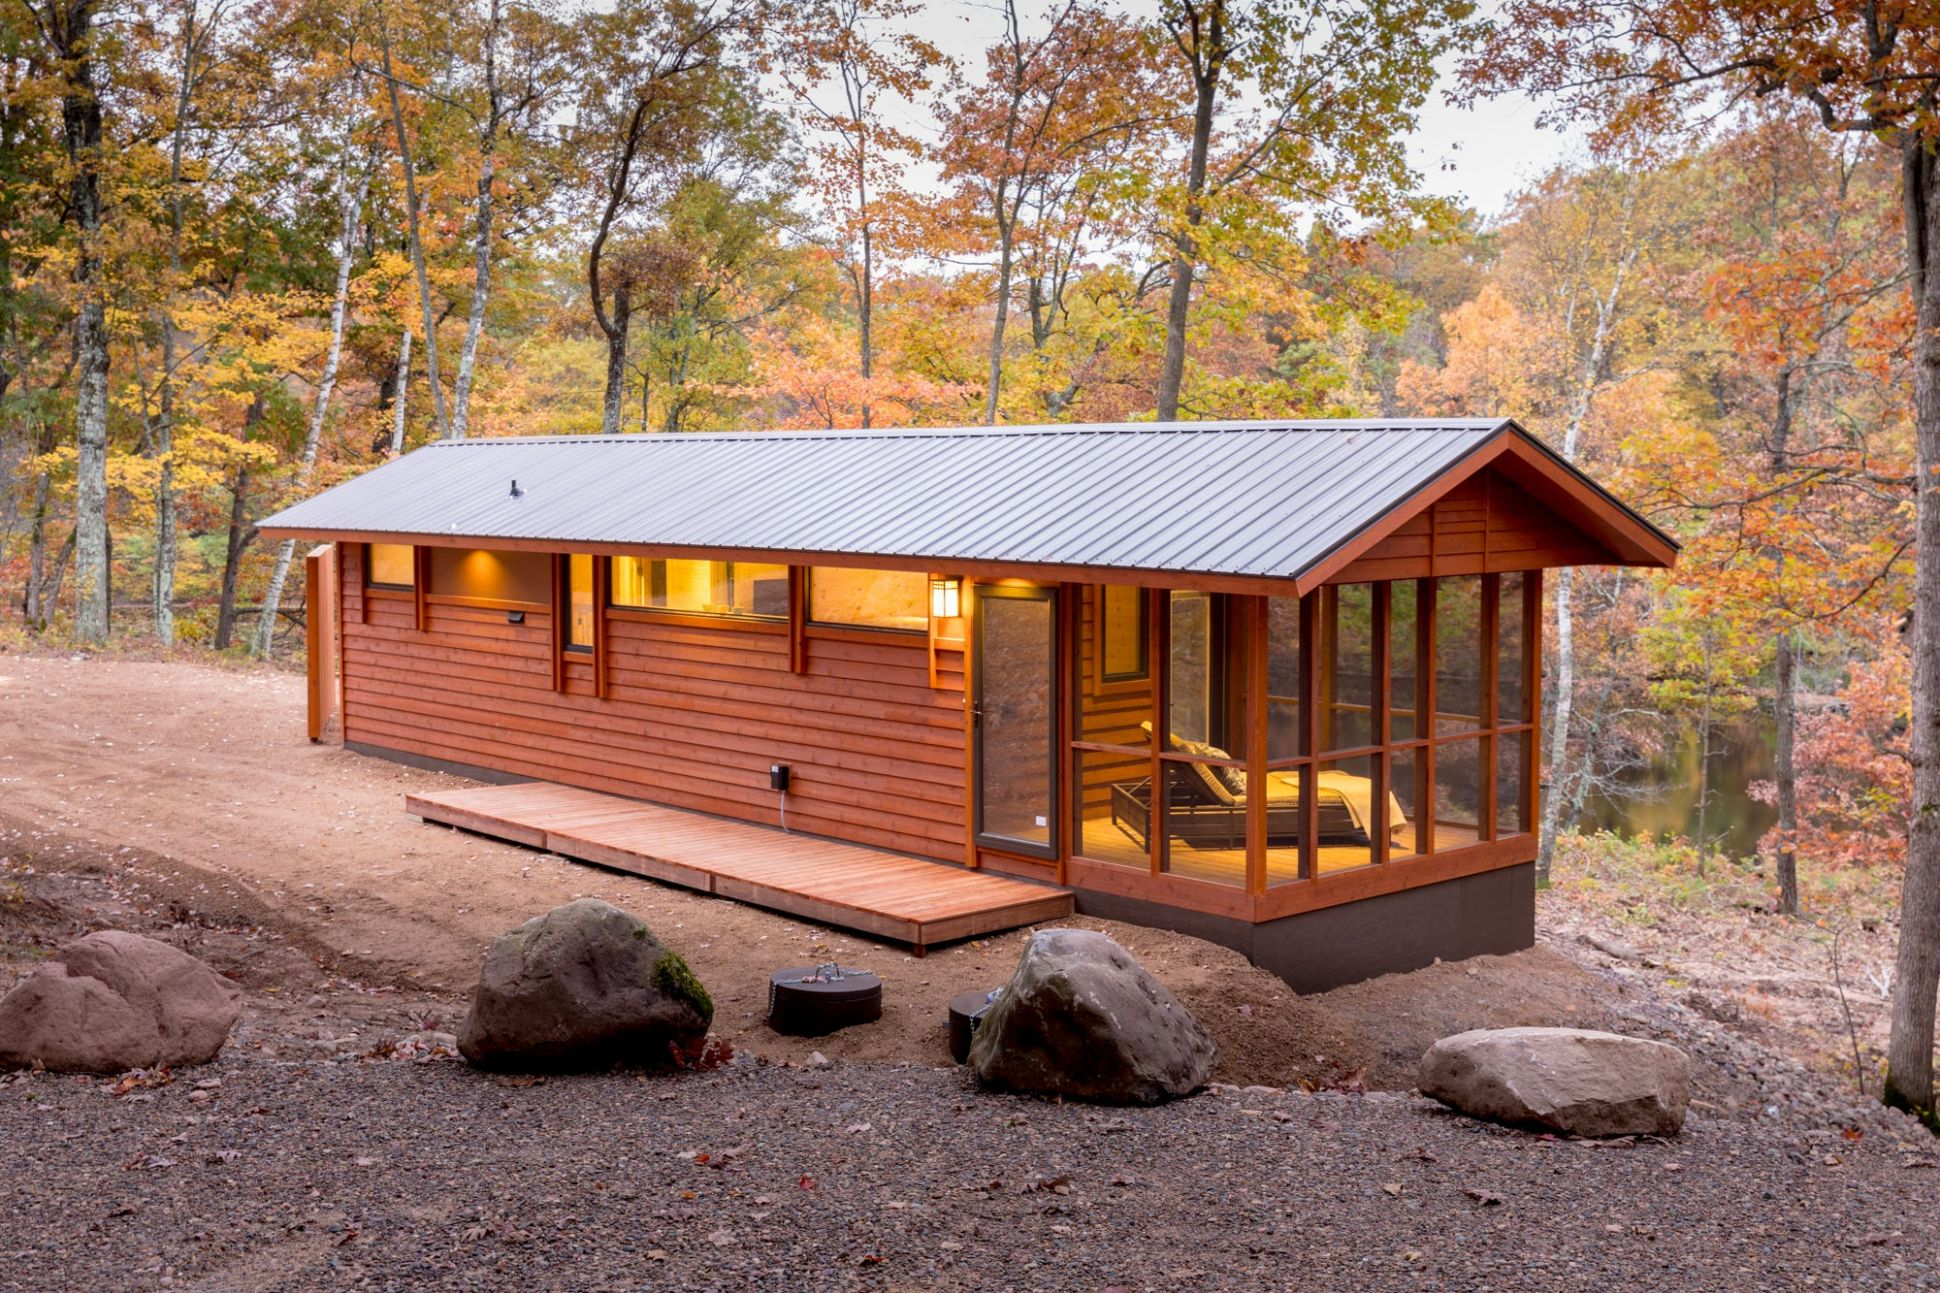 This tiny house in Wisconsin's Northwoods is a big escape | ktvb.com